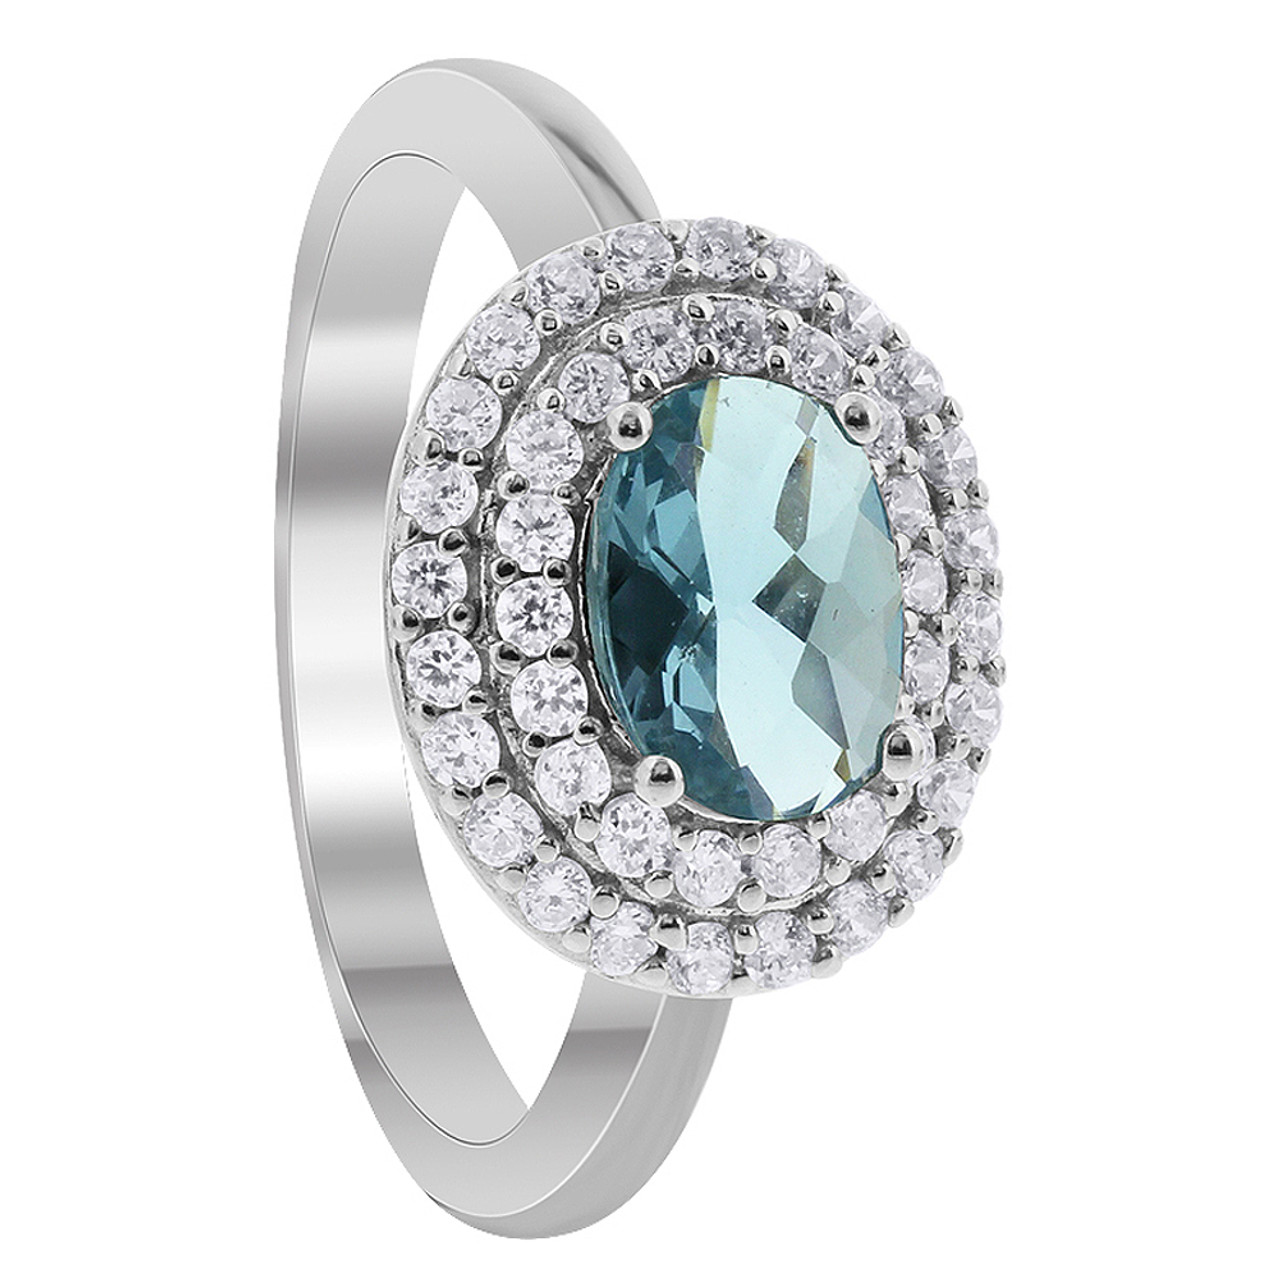 925 Sterling Silver Oval Aquamarine Color Cubic Zirconia Solitaire with Accents Ring